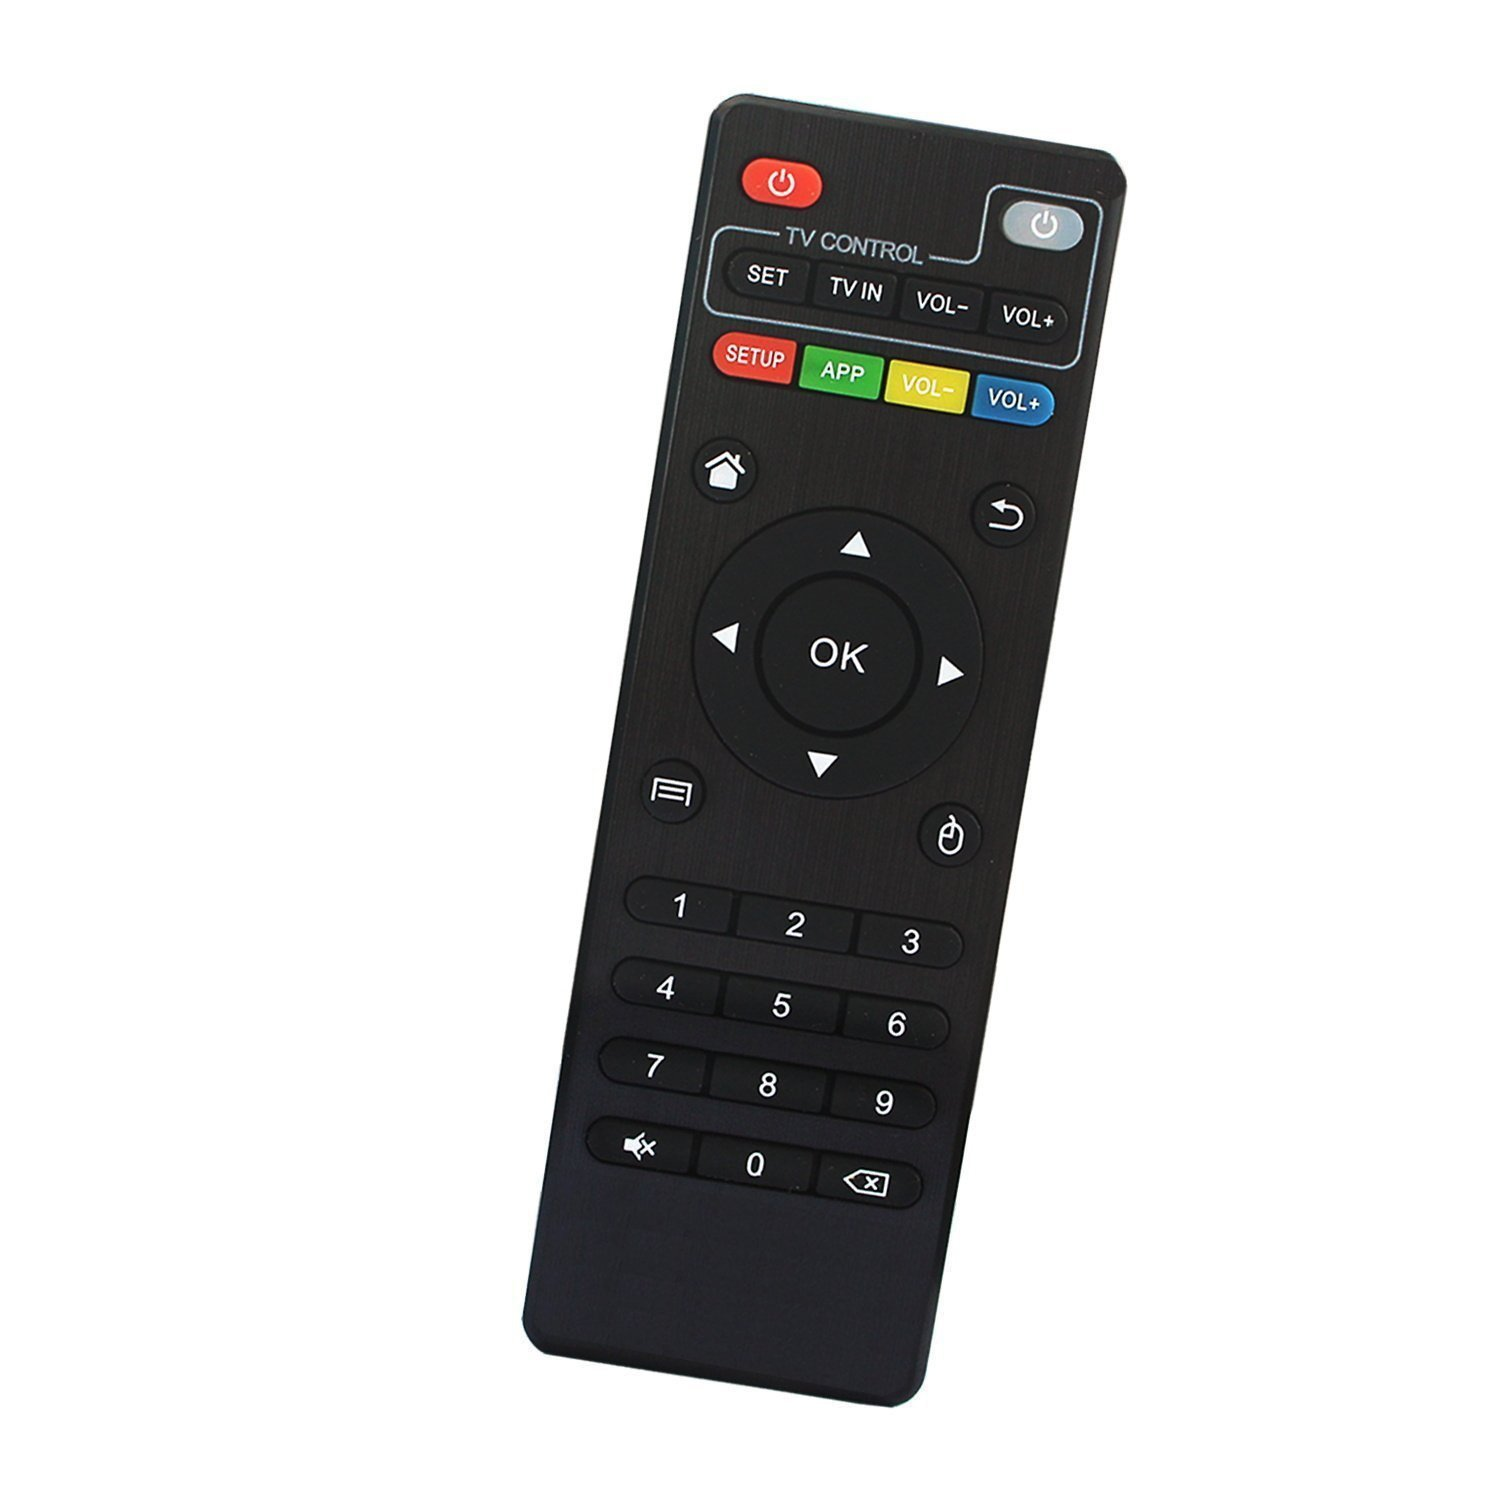 TV Box Remote Control Replacement IR Controller Only for T95Z Plus, T95K PRO, T95V PRO, T95U PRO, T95W PRO, QBox Andriod TV Box D5/D32 Smart Set Top Media Player